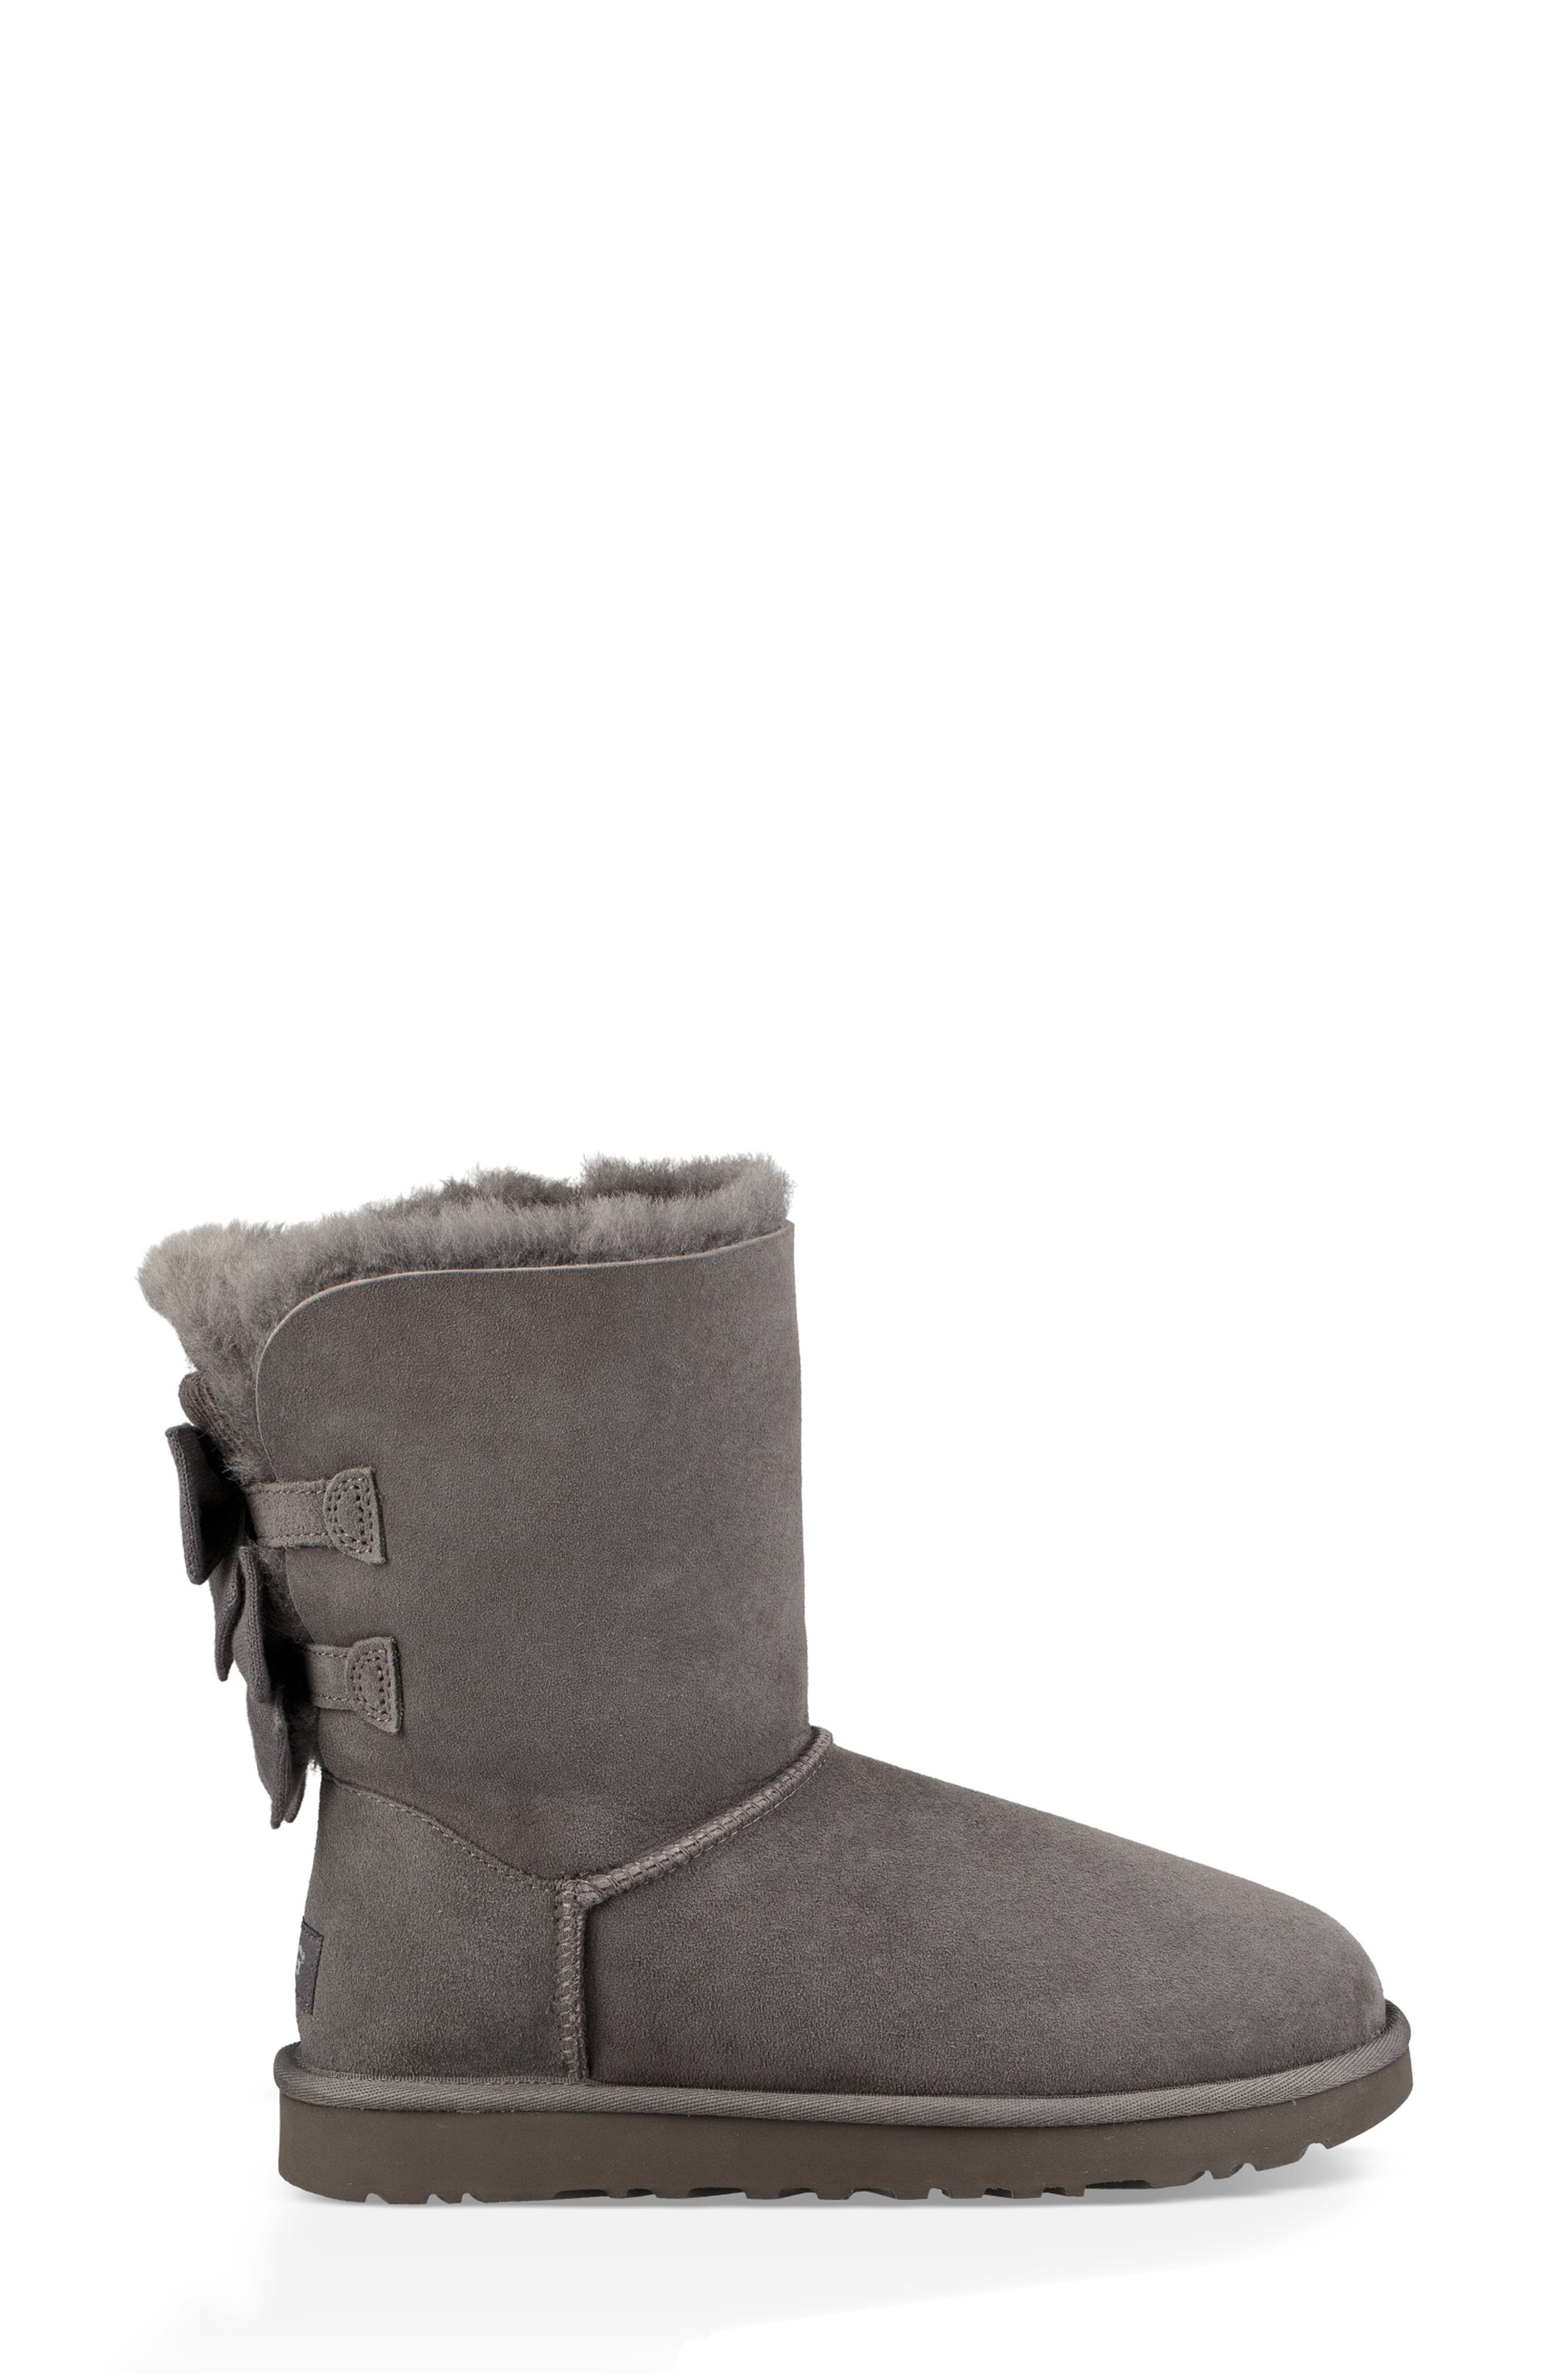 Bailey Bow Genuine Shearling Bootie,                             Alternate thumbnail 3, color,                             020